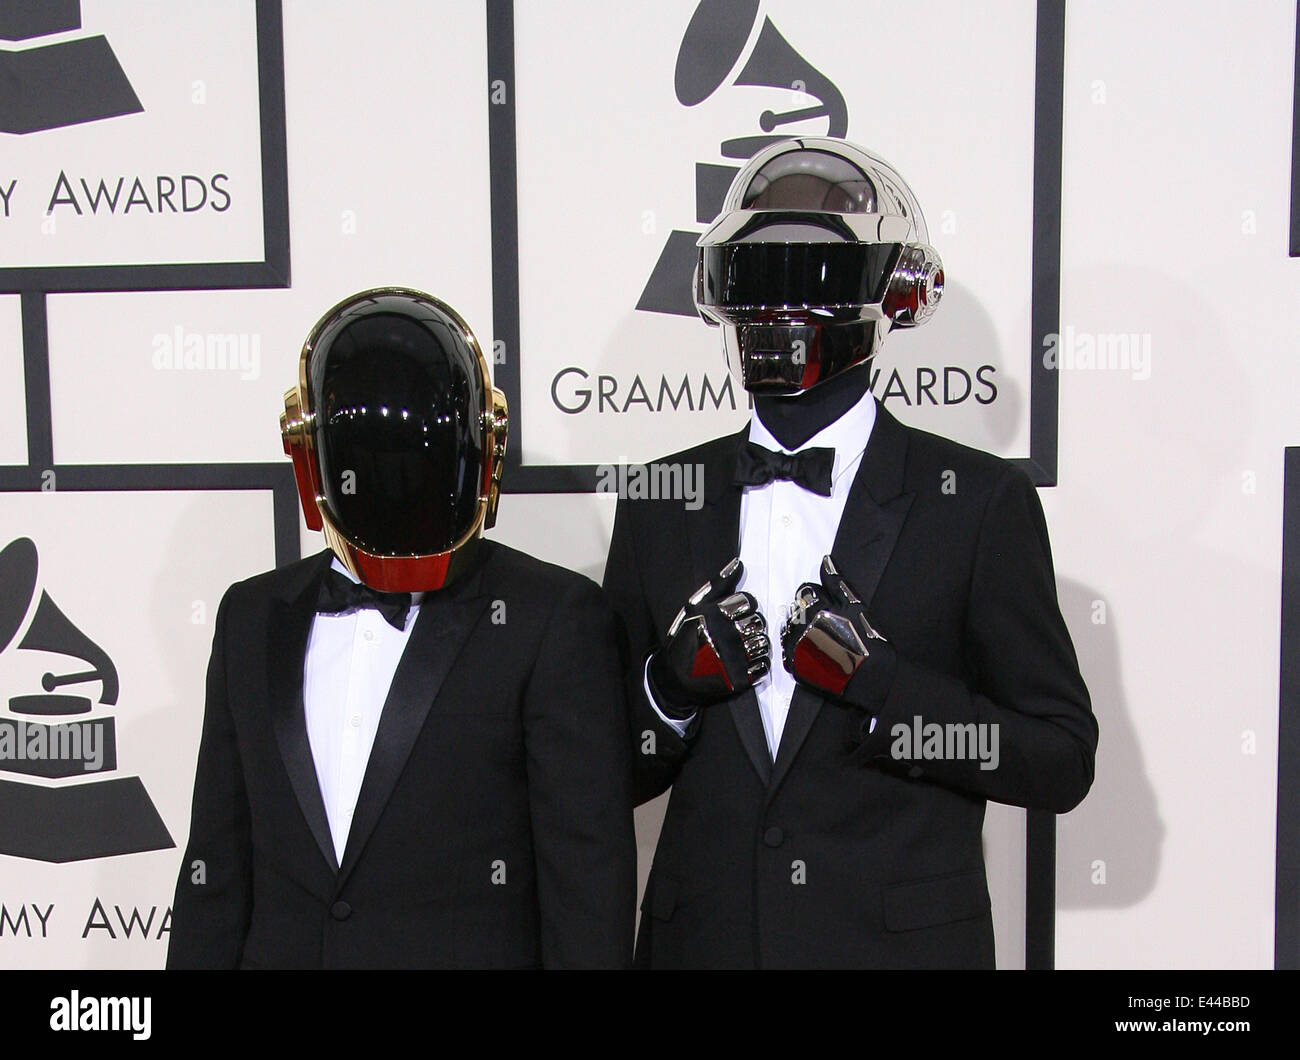 Die 56th Annual GRAMMY Awards (2014) statt im Staples Center in Los Angeles, CA. 26.01.2014 Featuring: Daft Punk Stockbild